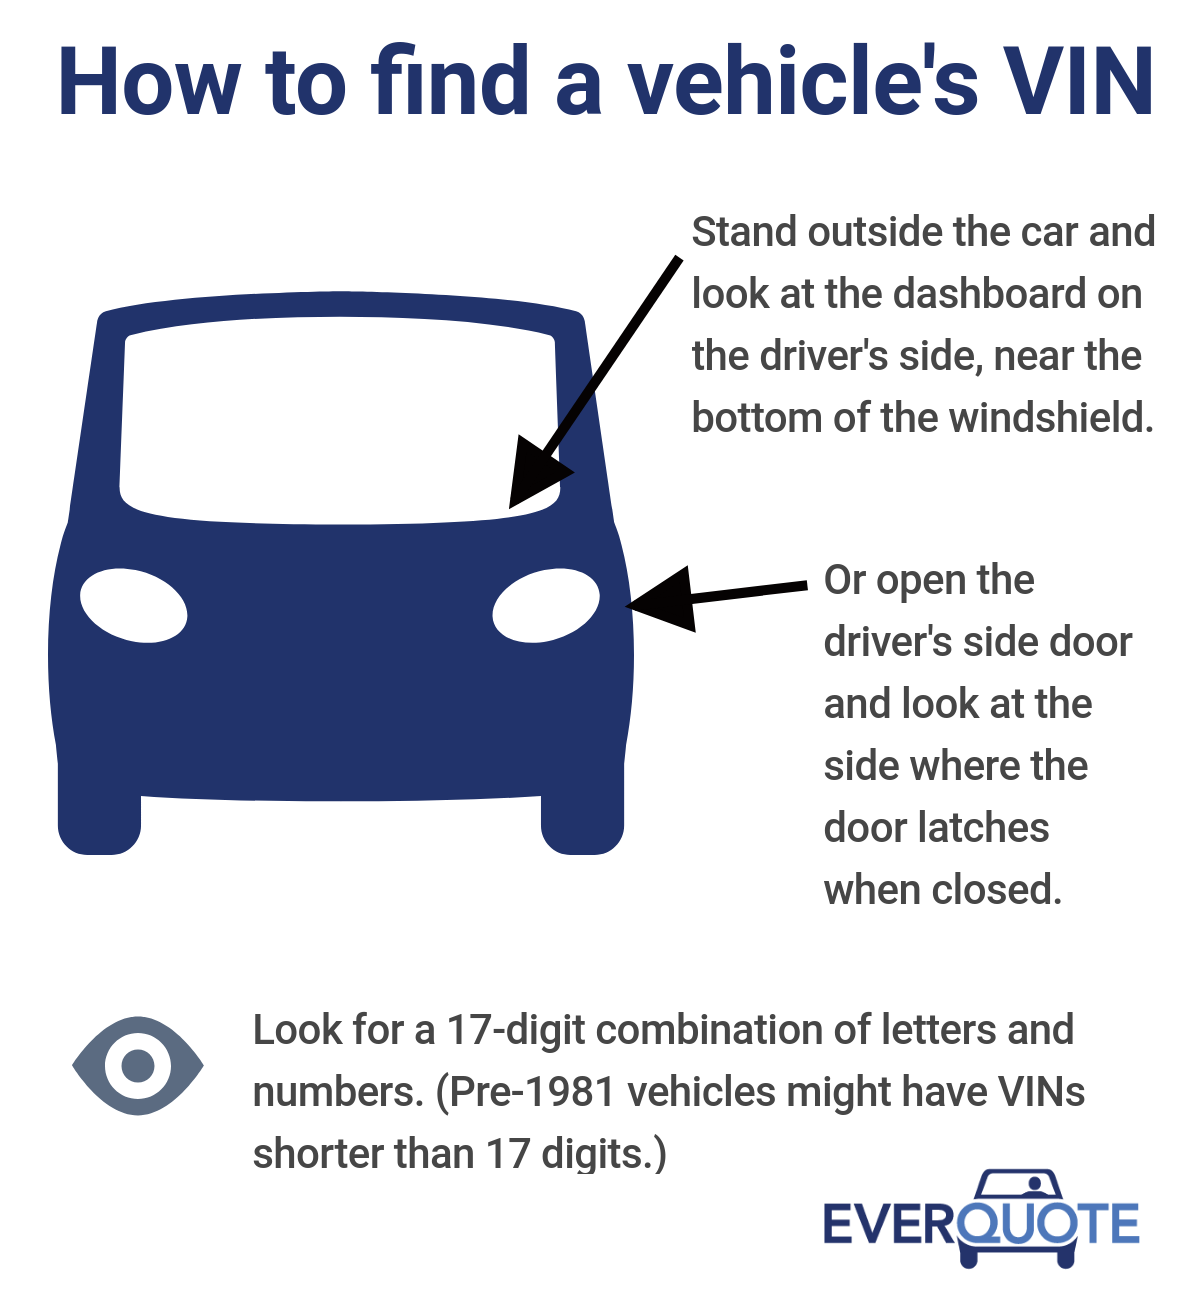 How to find a vehicle's VIN